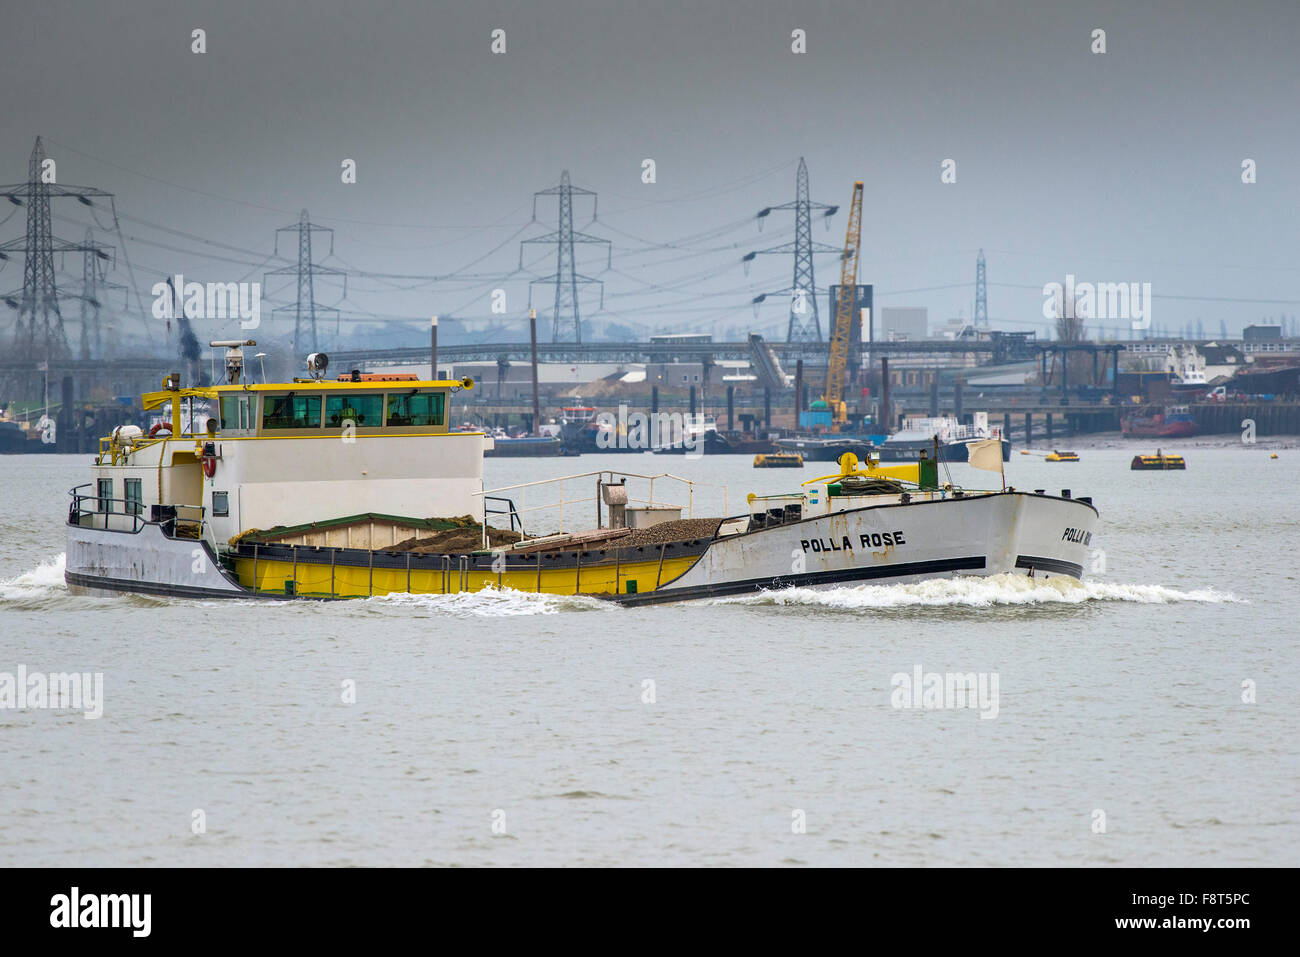 The general cargo ship, Polla Rose steams upriver on the River Thames. - Stock Image